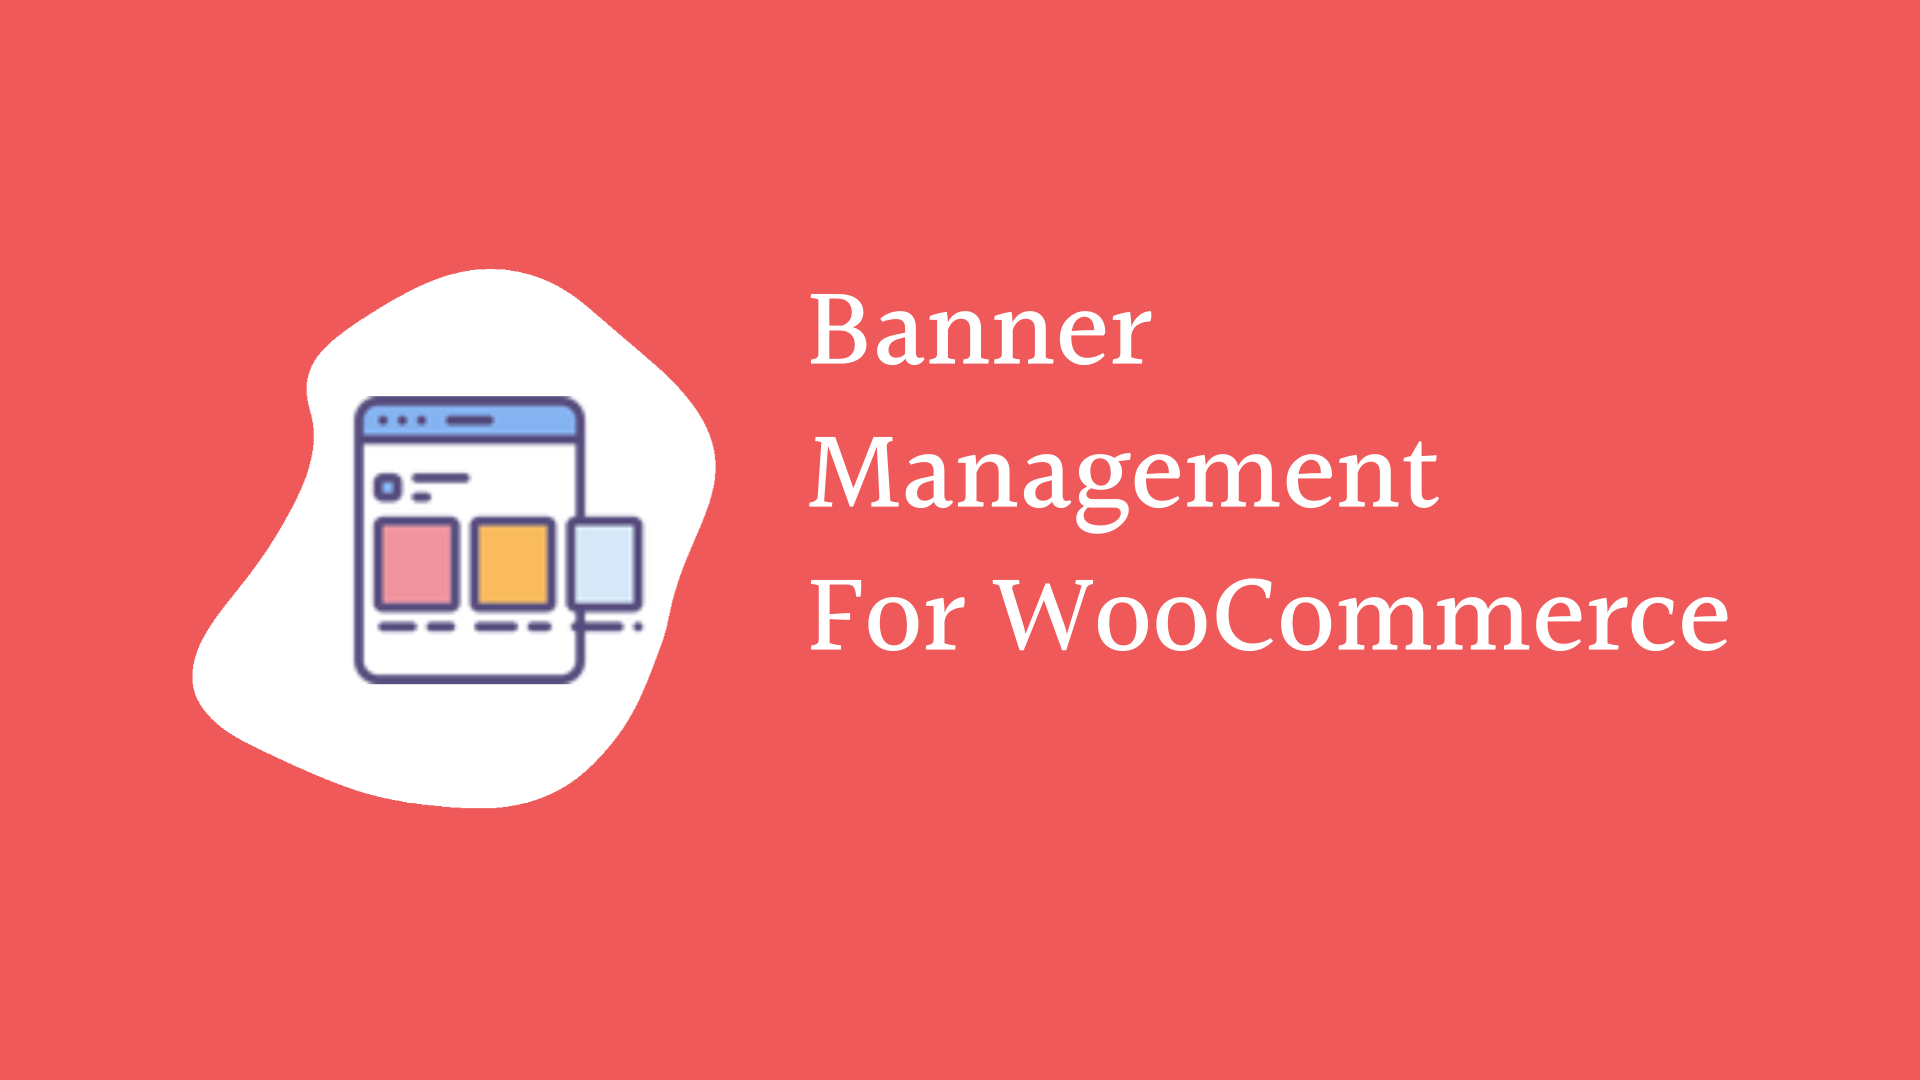 Banner management in WooCommerce – How to Add banners to your online shop?